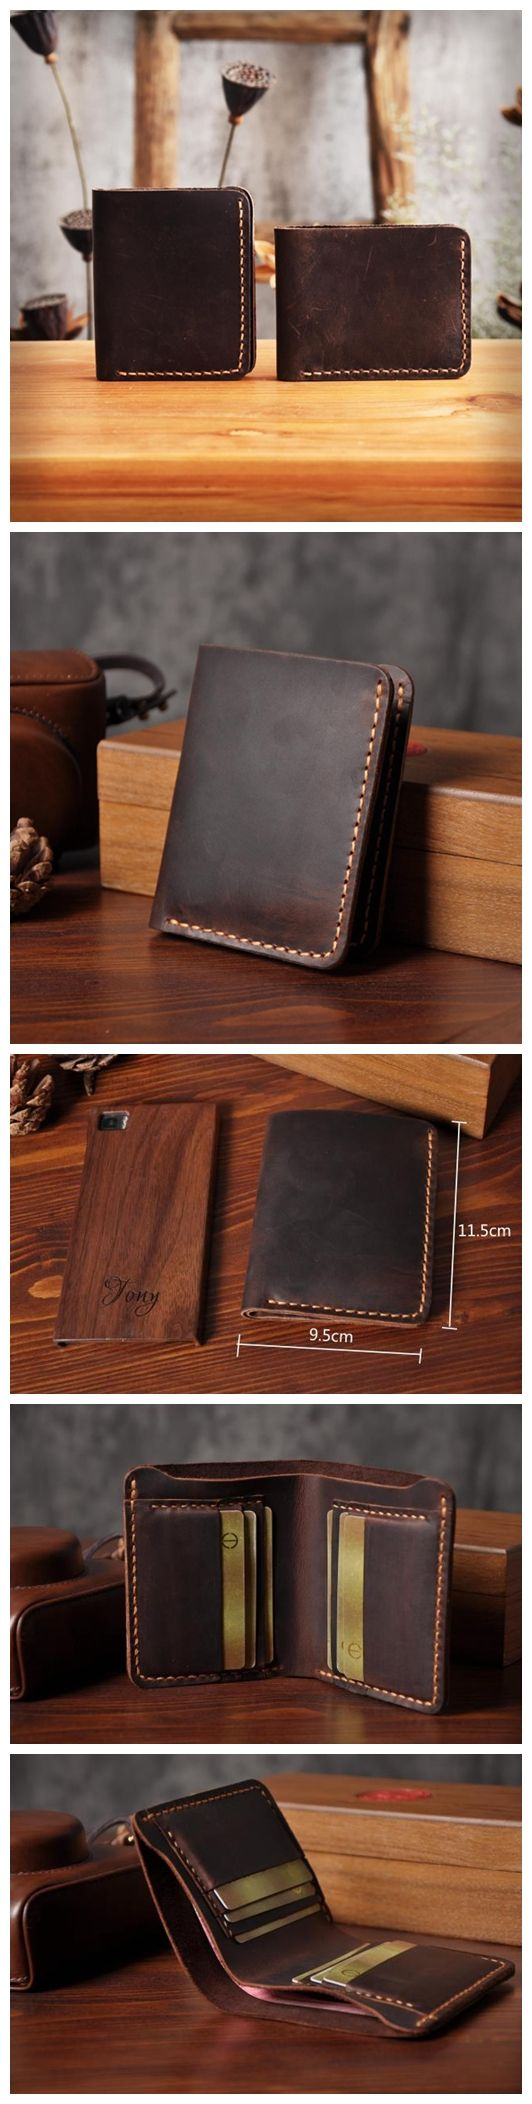 LISABAG--Handmade Men's Long Leather Wallet Money Purse Card Holder MT03